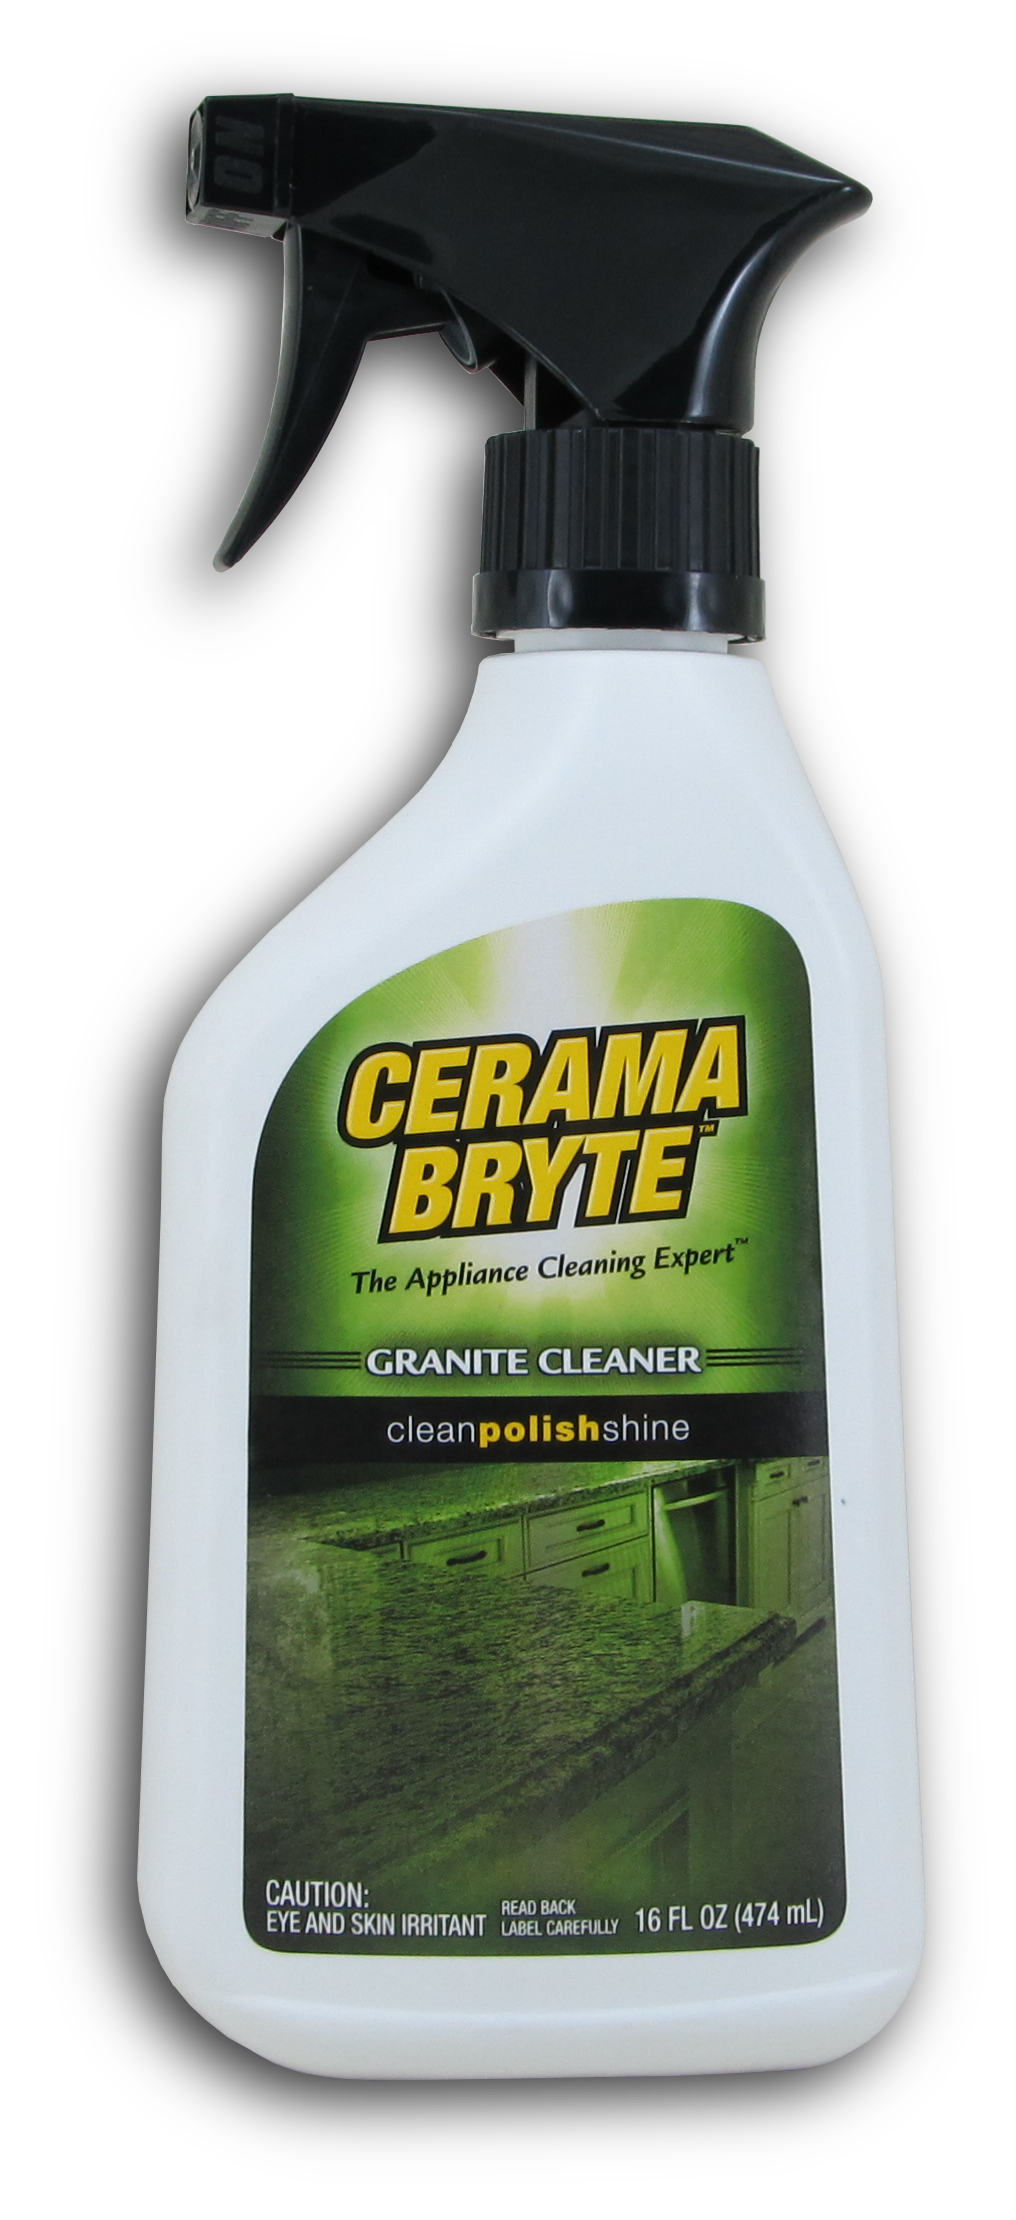 Cerama Bryte   Granite Cleaner A Must Try If You Have Granite Countertops!